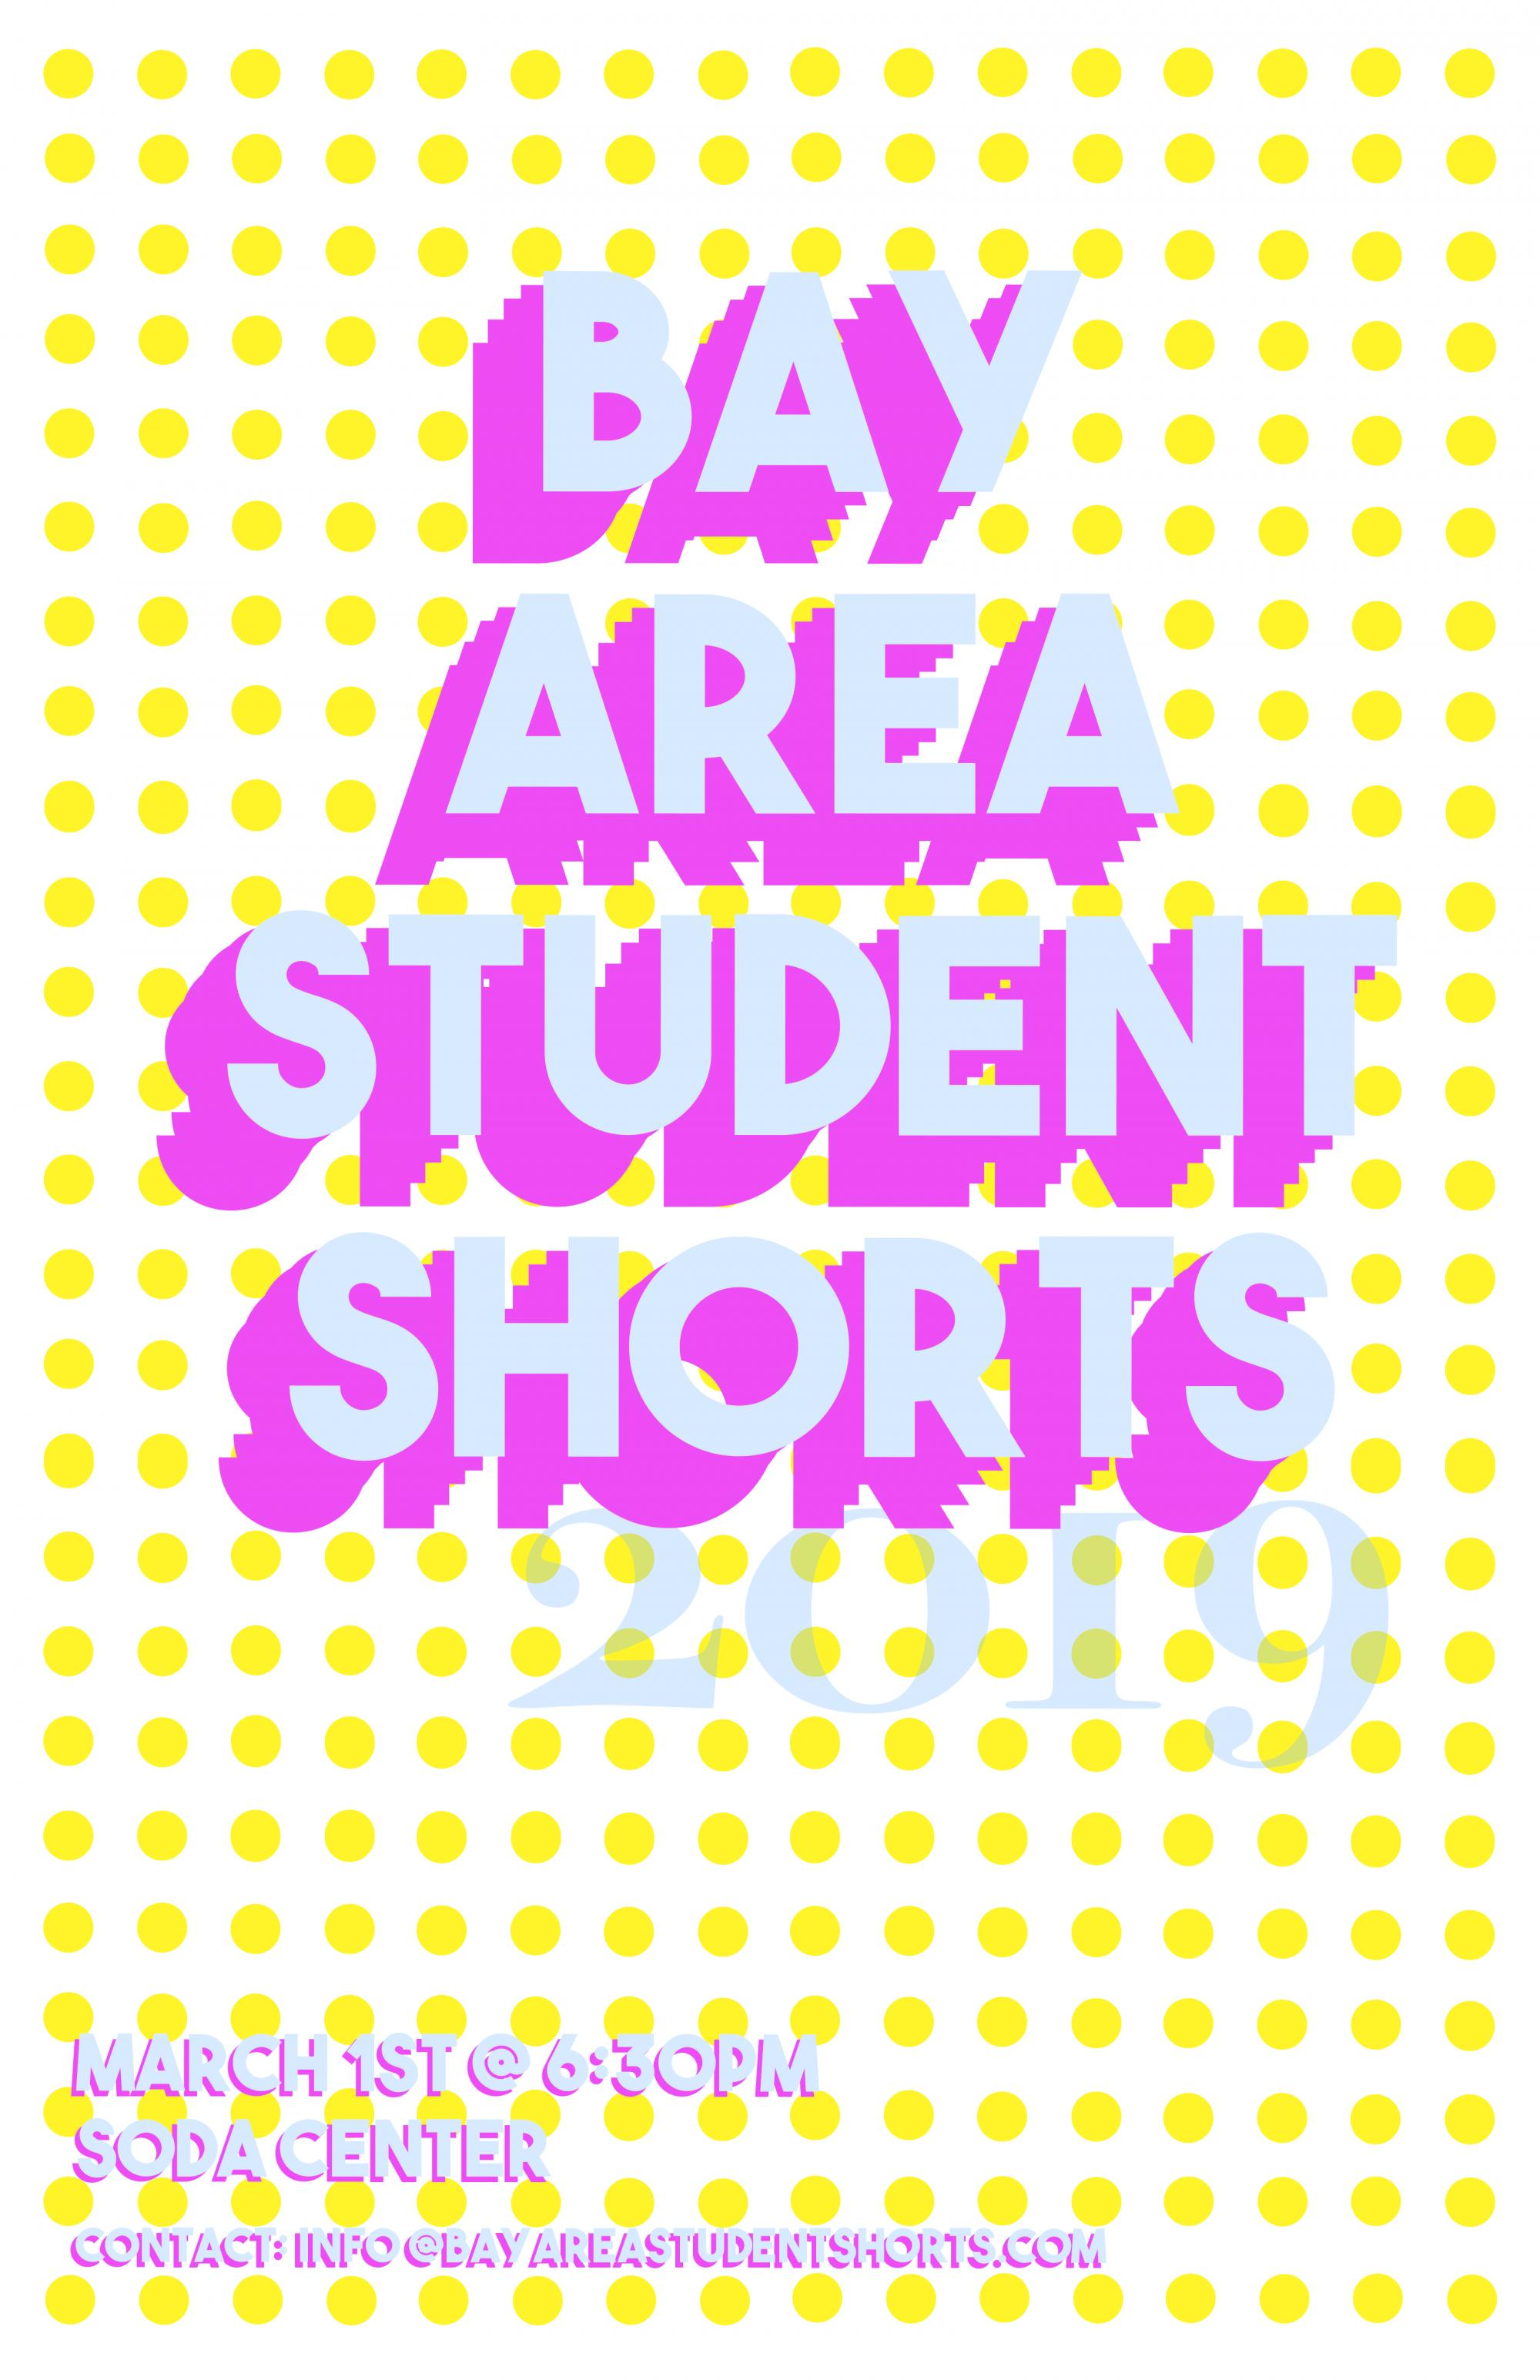 Bay Area Student Shorts